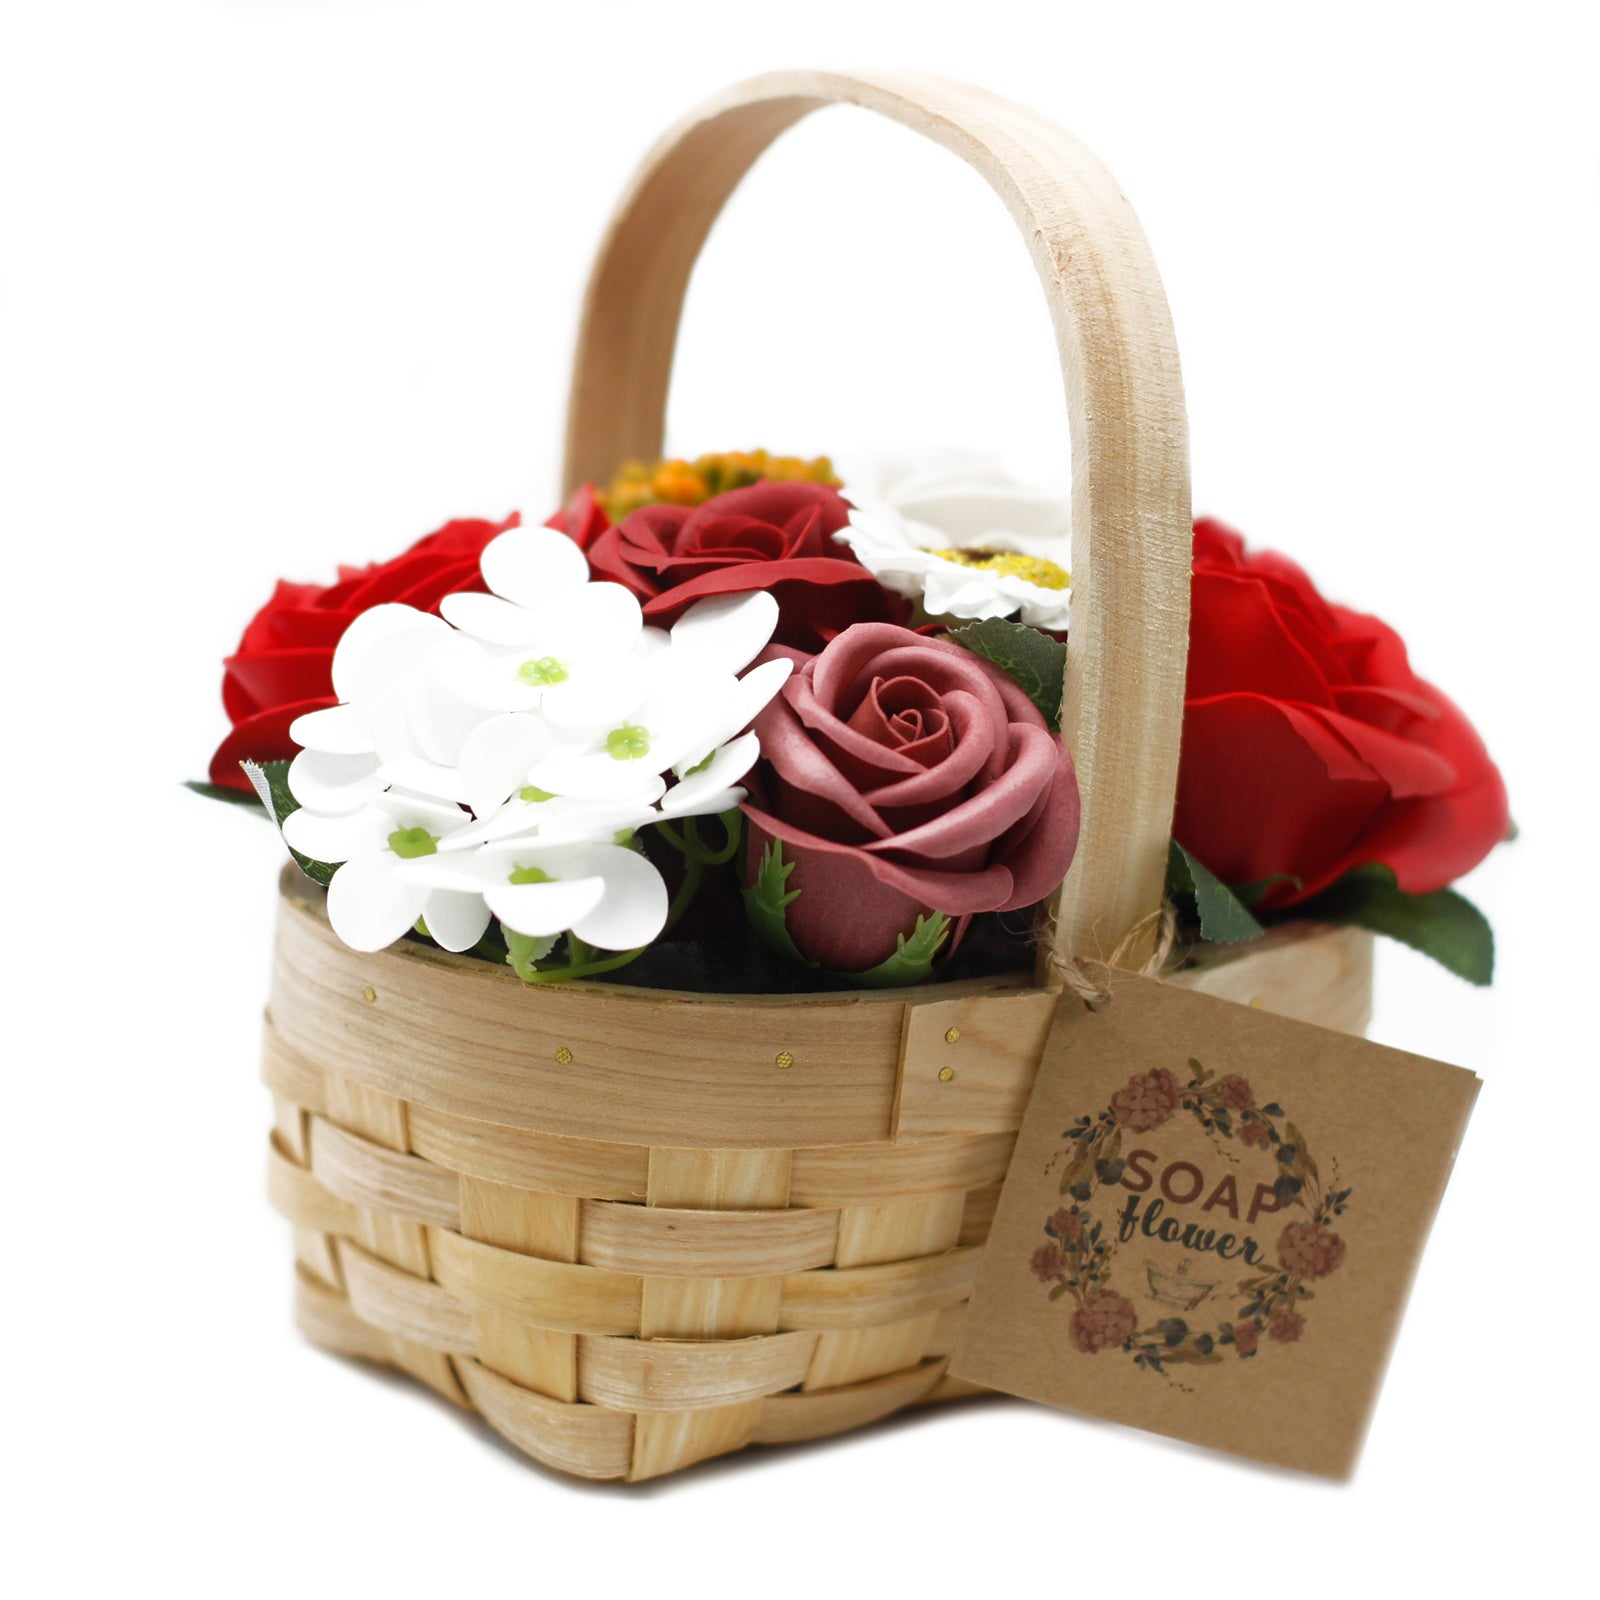 Medium Red Bouquet in Wicker Basket, Gift Giving by Gifts24-7